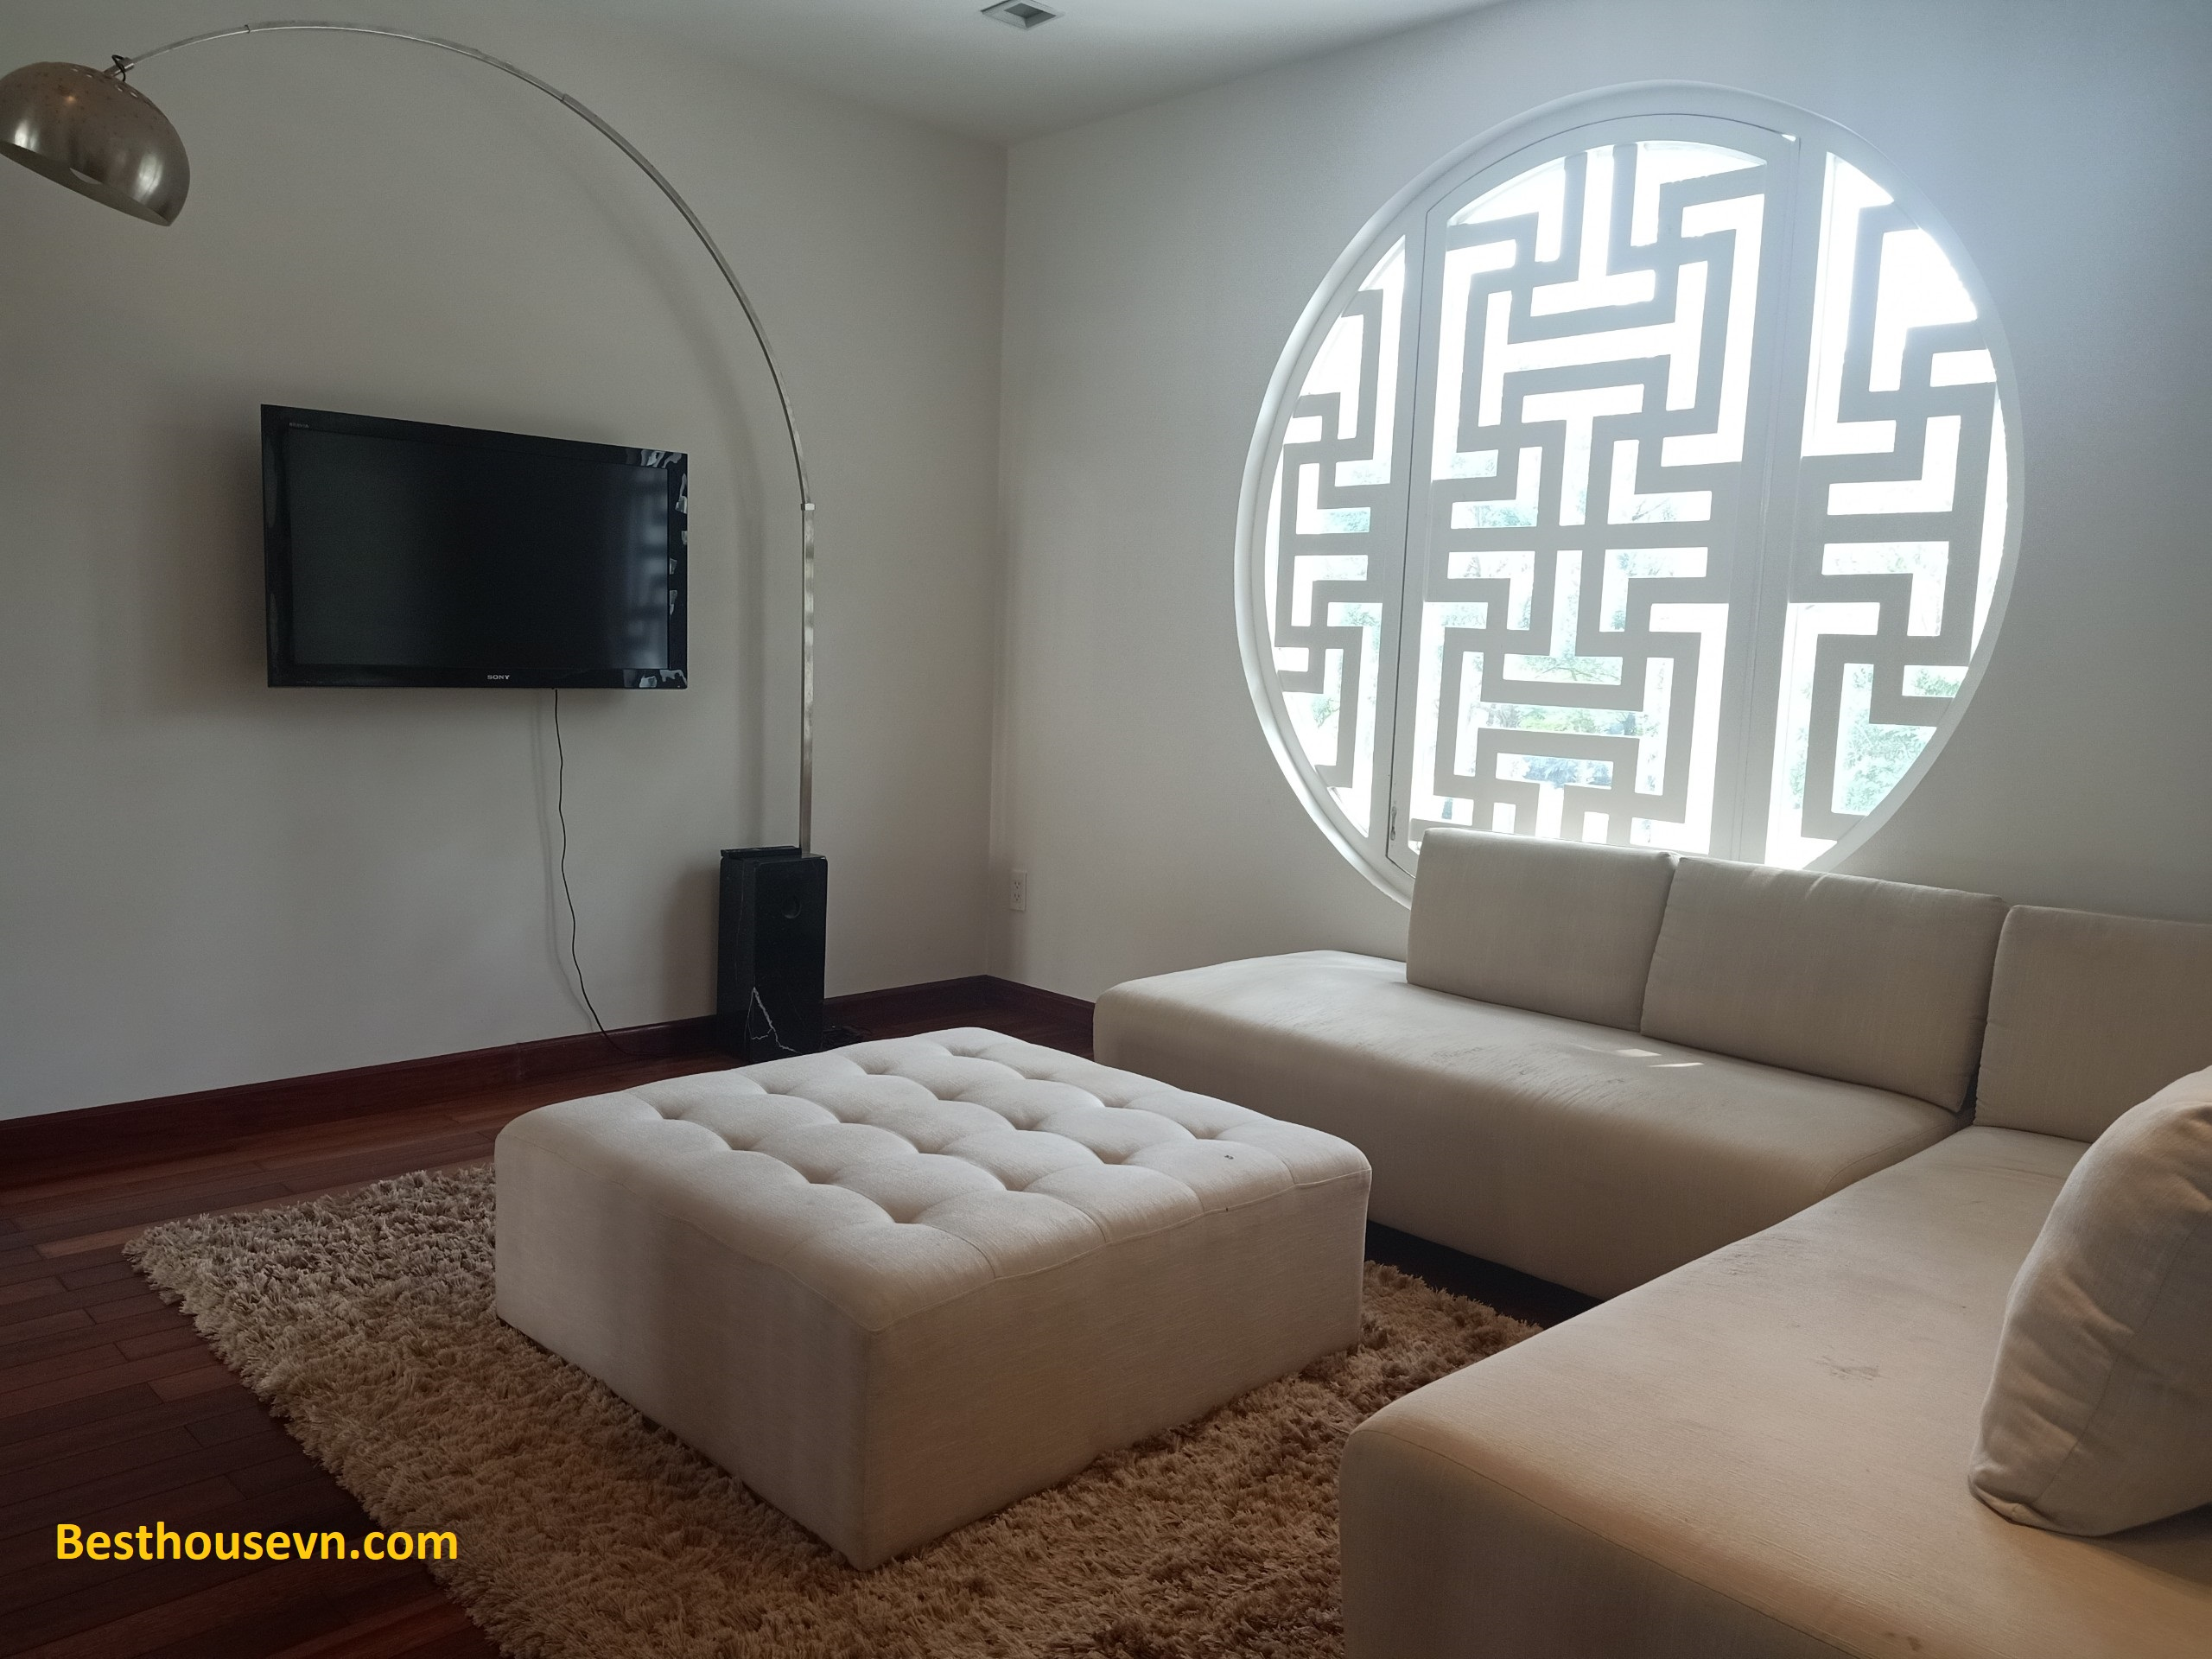 swimming-pool-Villa-for-rent-in-phu-my-hung-3